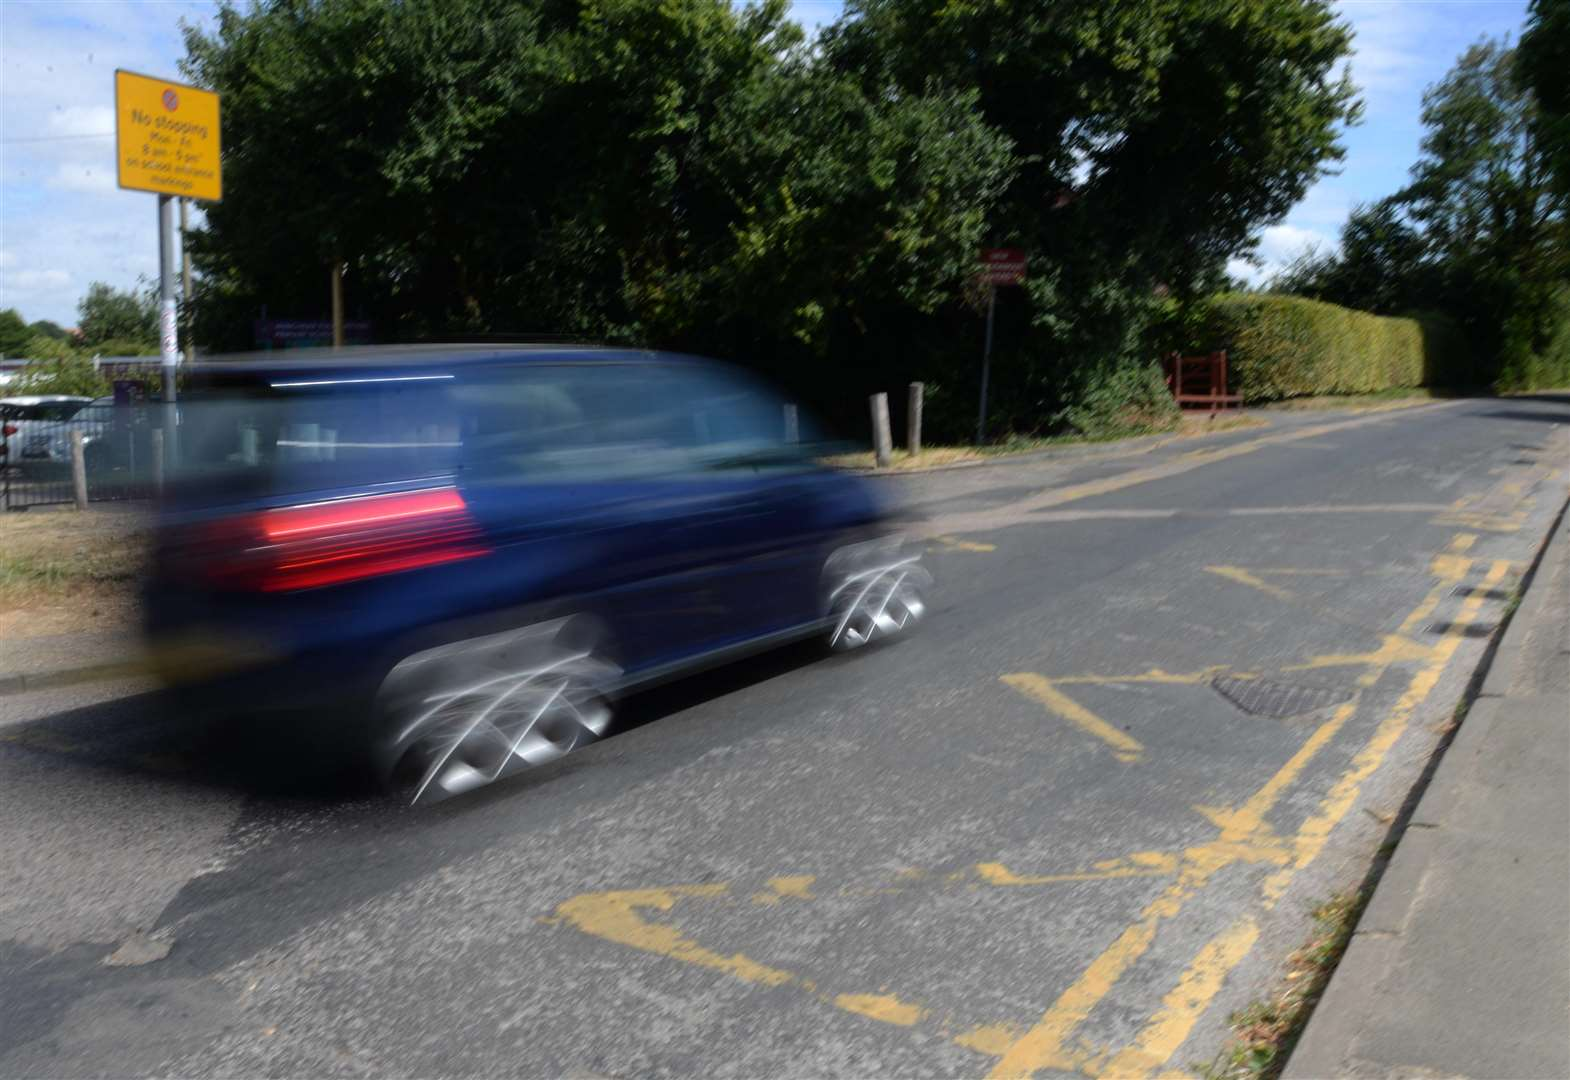 Double yellow lines pose 'enormous' threat for schoolchildren